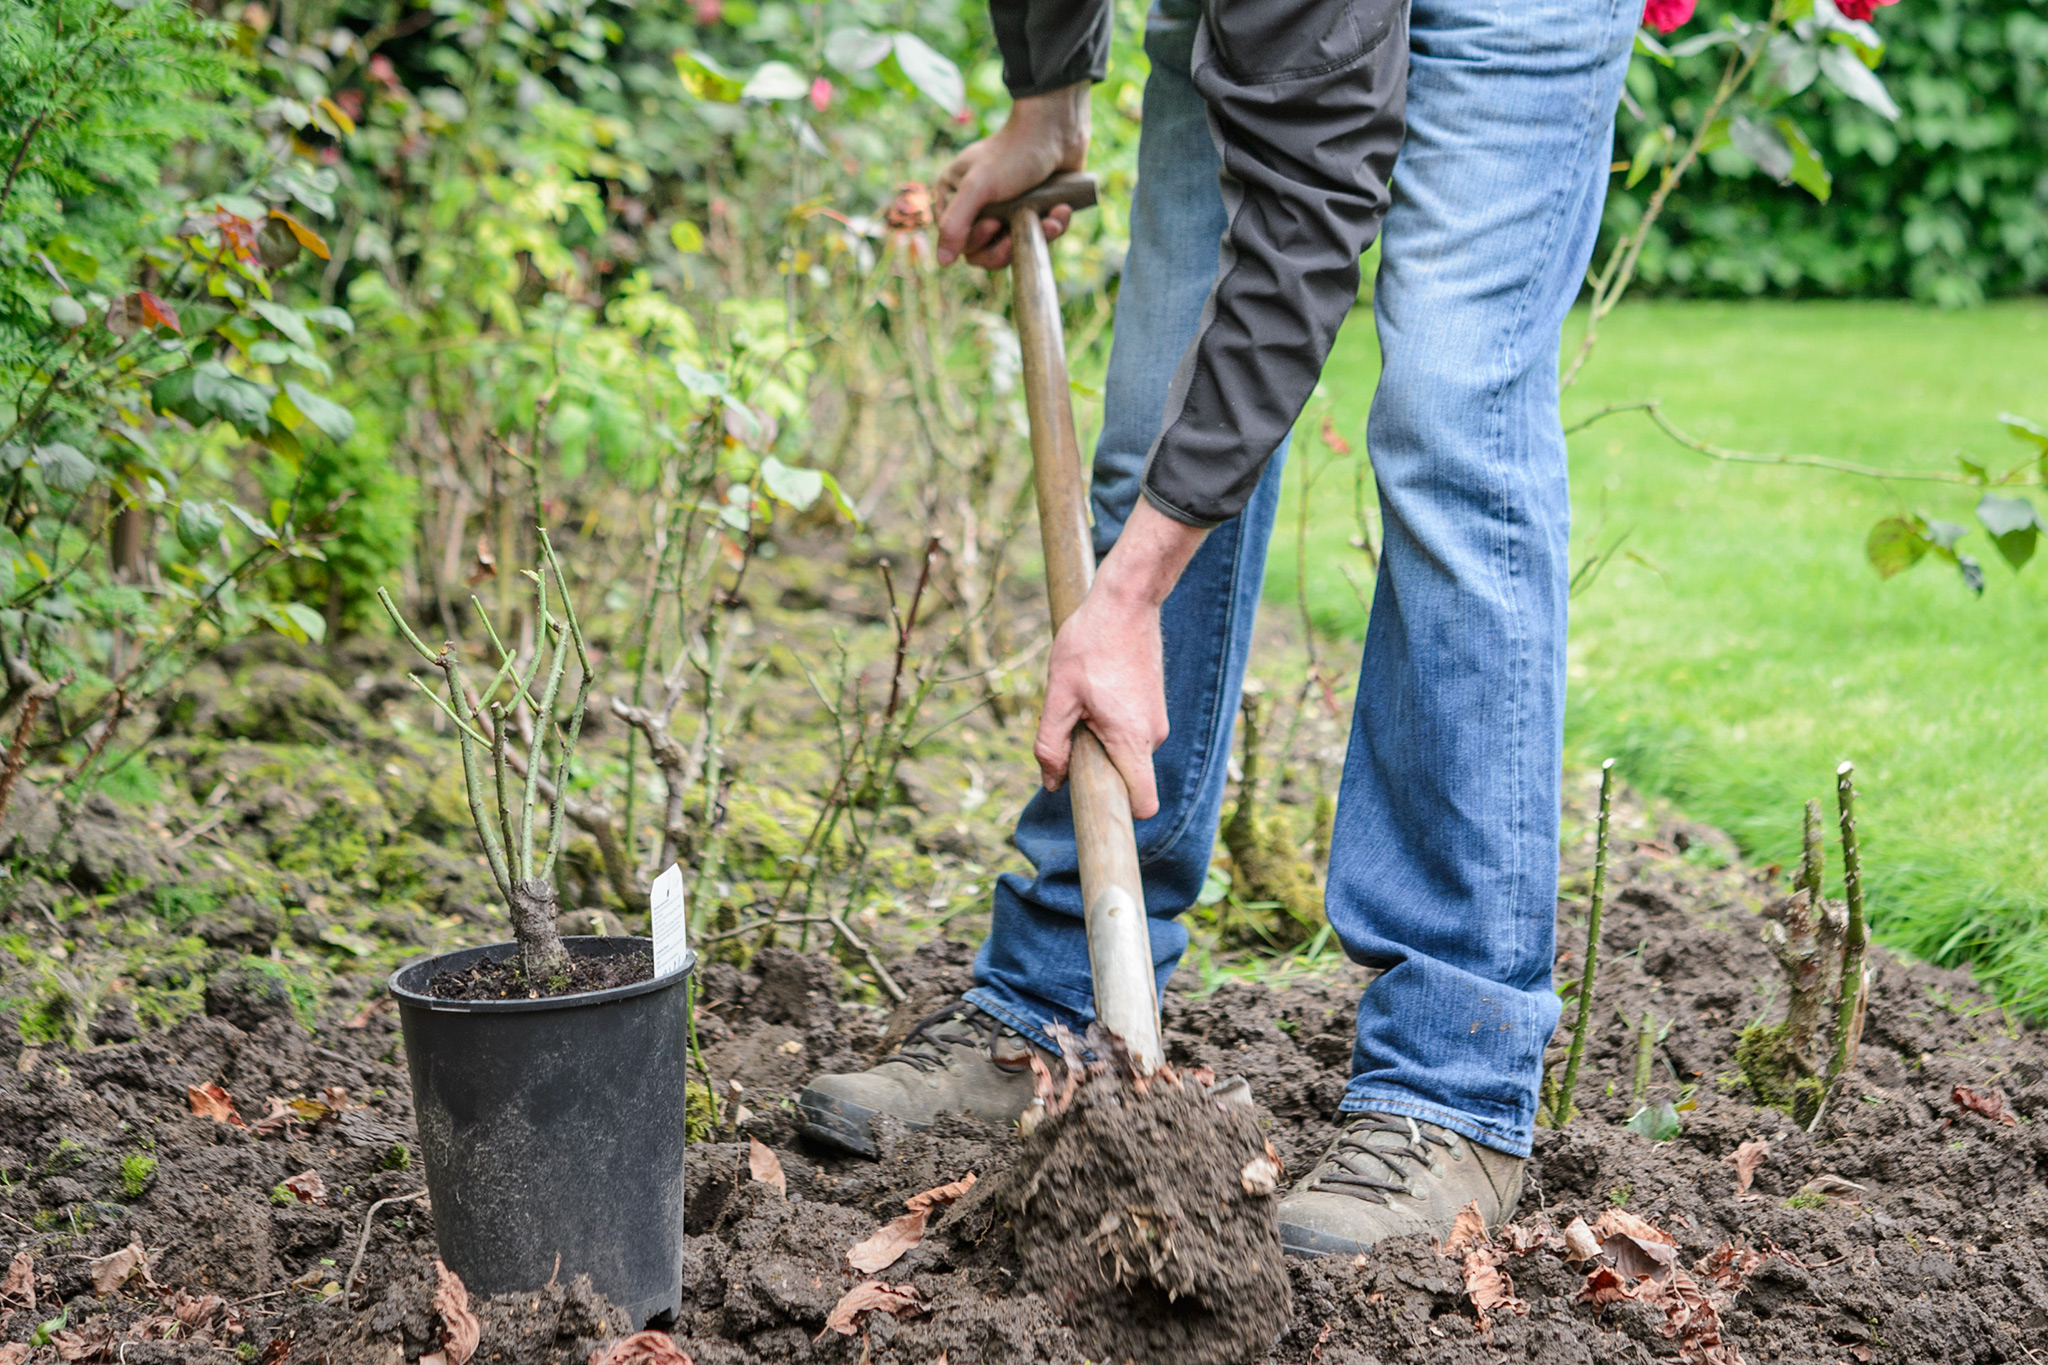 How to Plant a Potted Rose